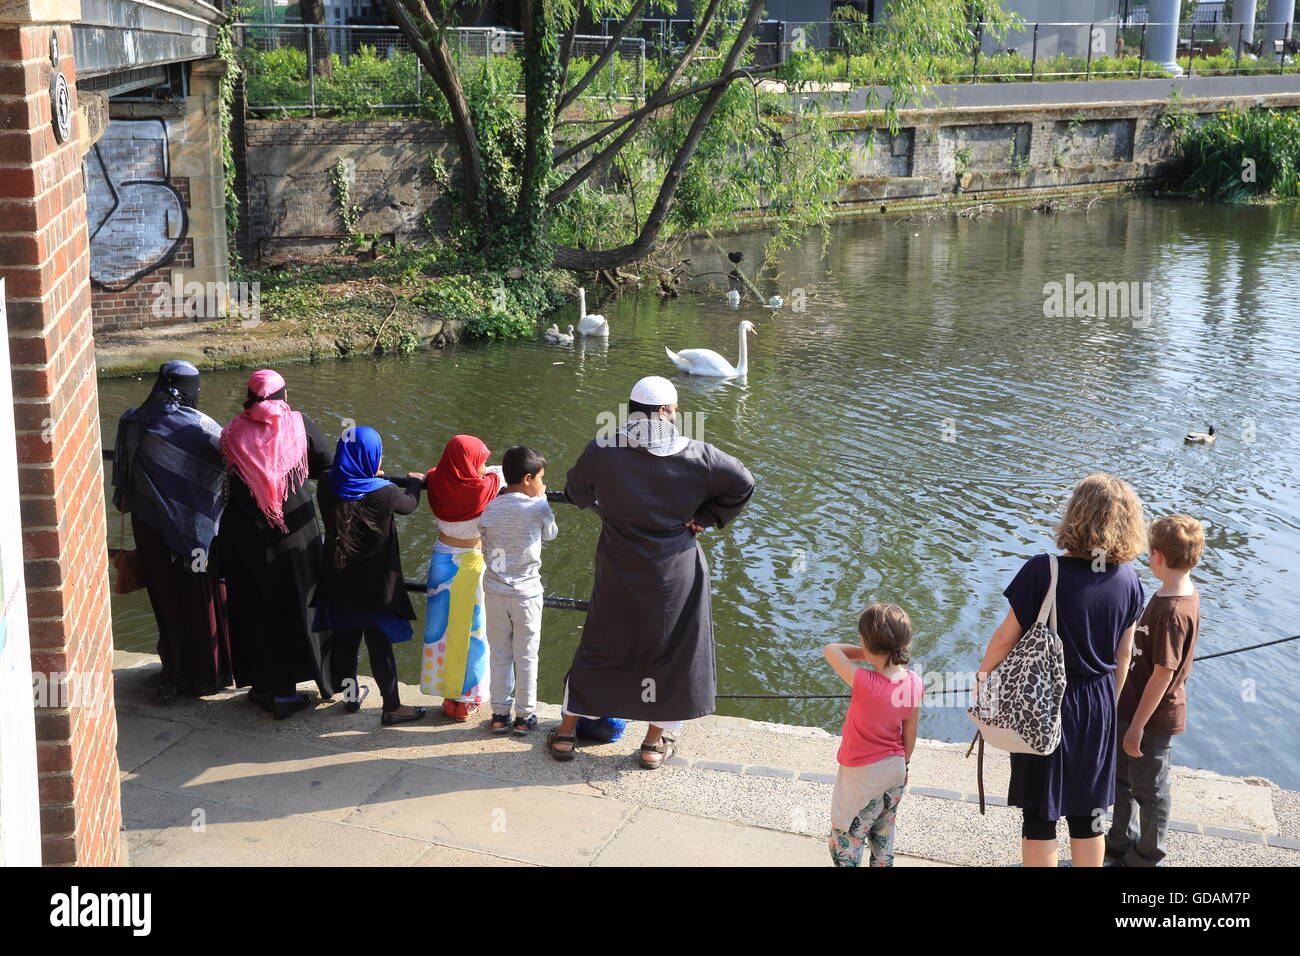 A multi ethnic group watching the swans on Regents Canal by York Way, near Kings Cross, in north London, England, - Stock Image